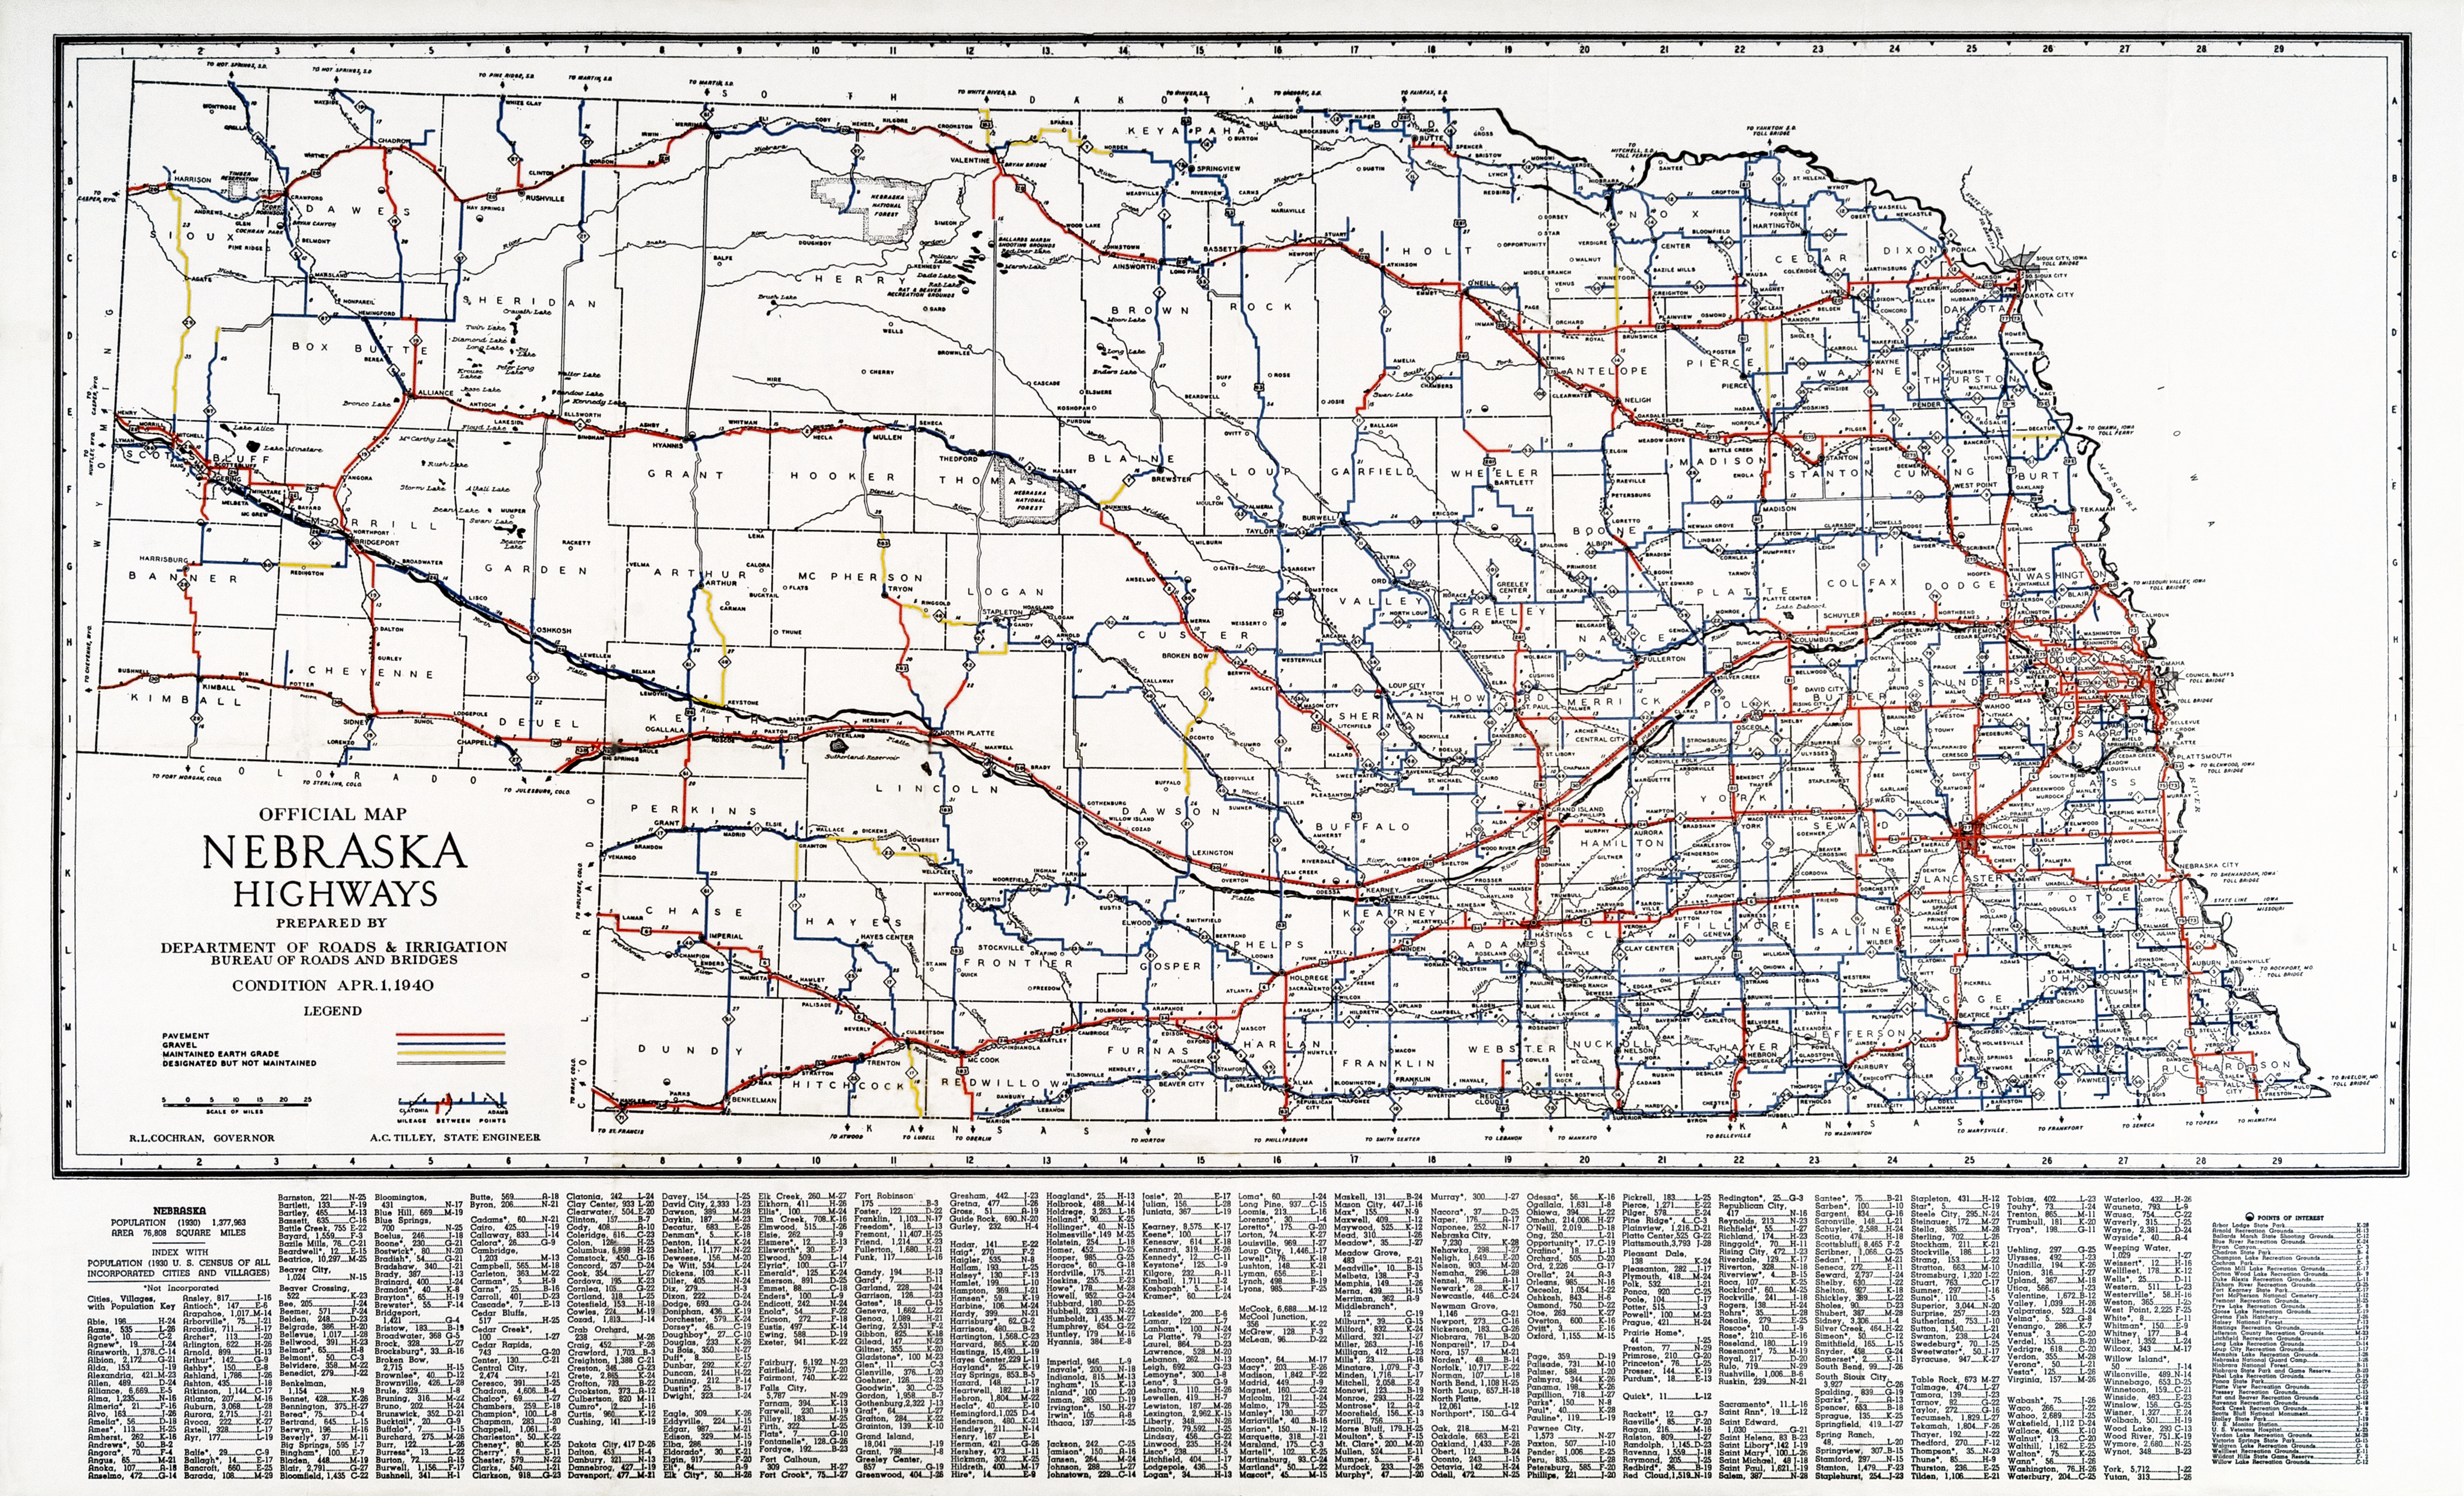 Nebraska Highway Map File:Official Map   Nebraska State Highway System (1940).png  Nebraska Highway Map